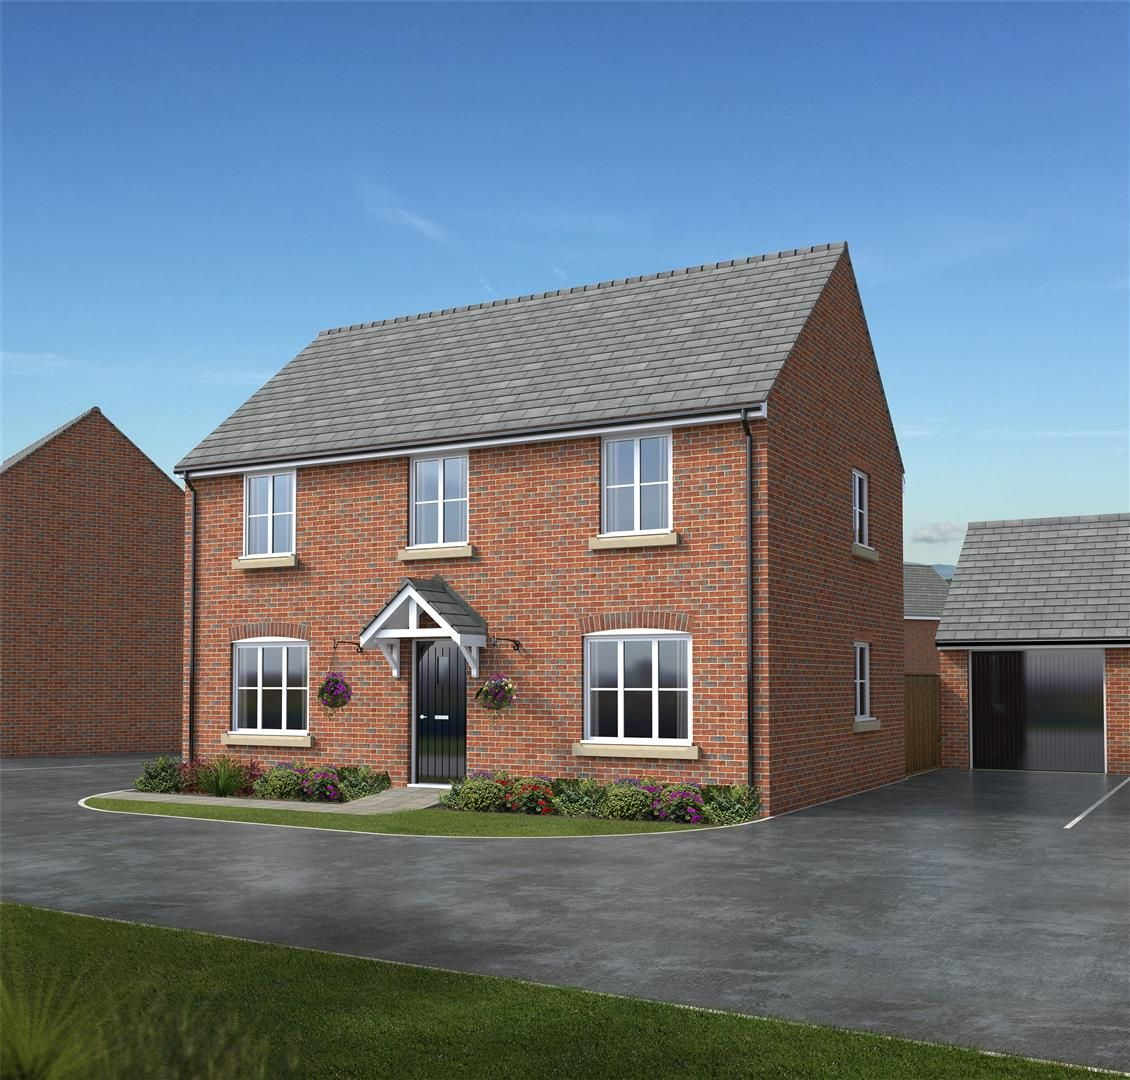 3 bed detached for sale in Kingstone 9